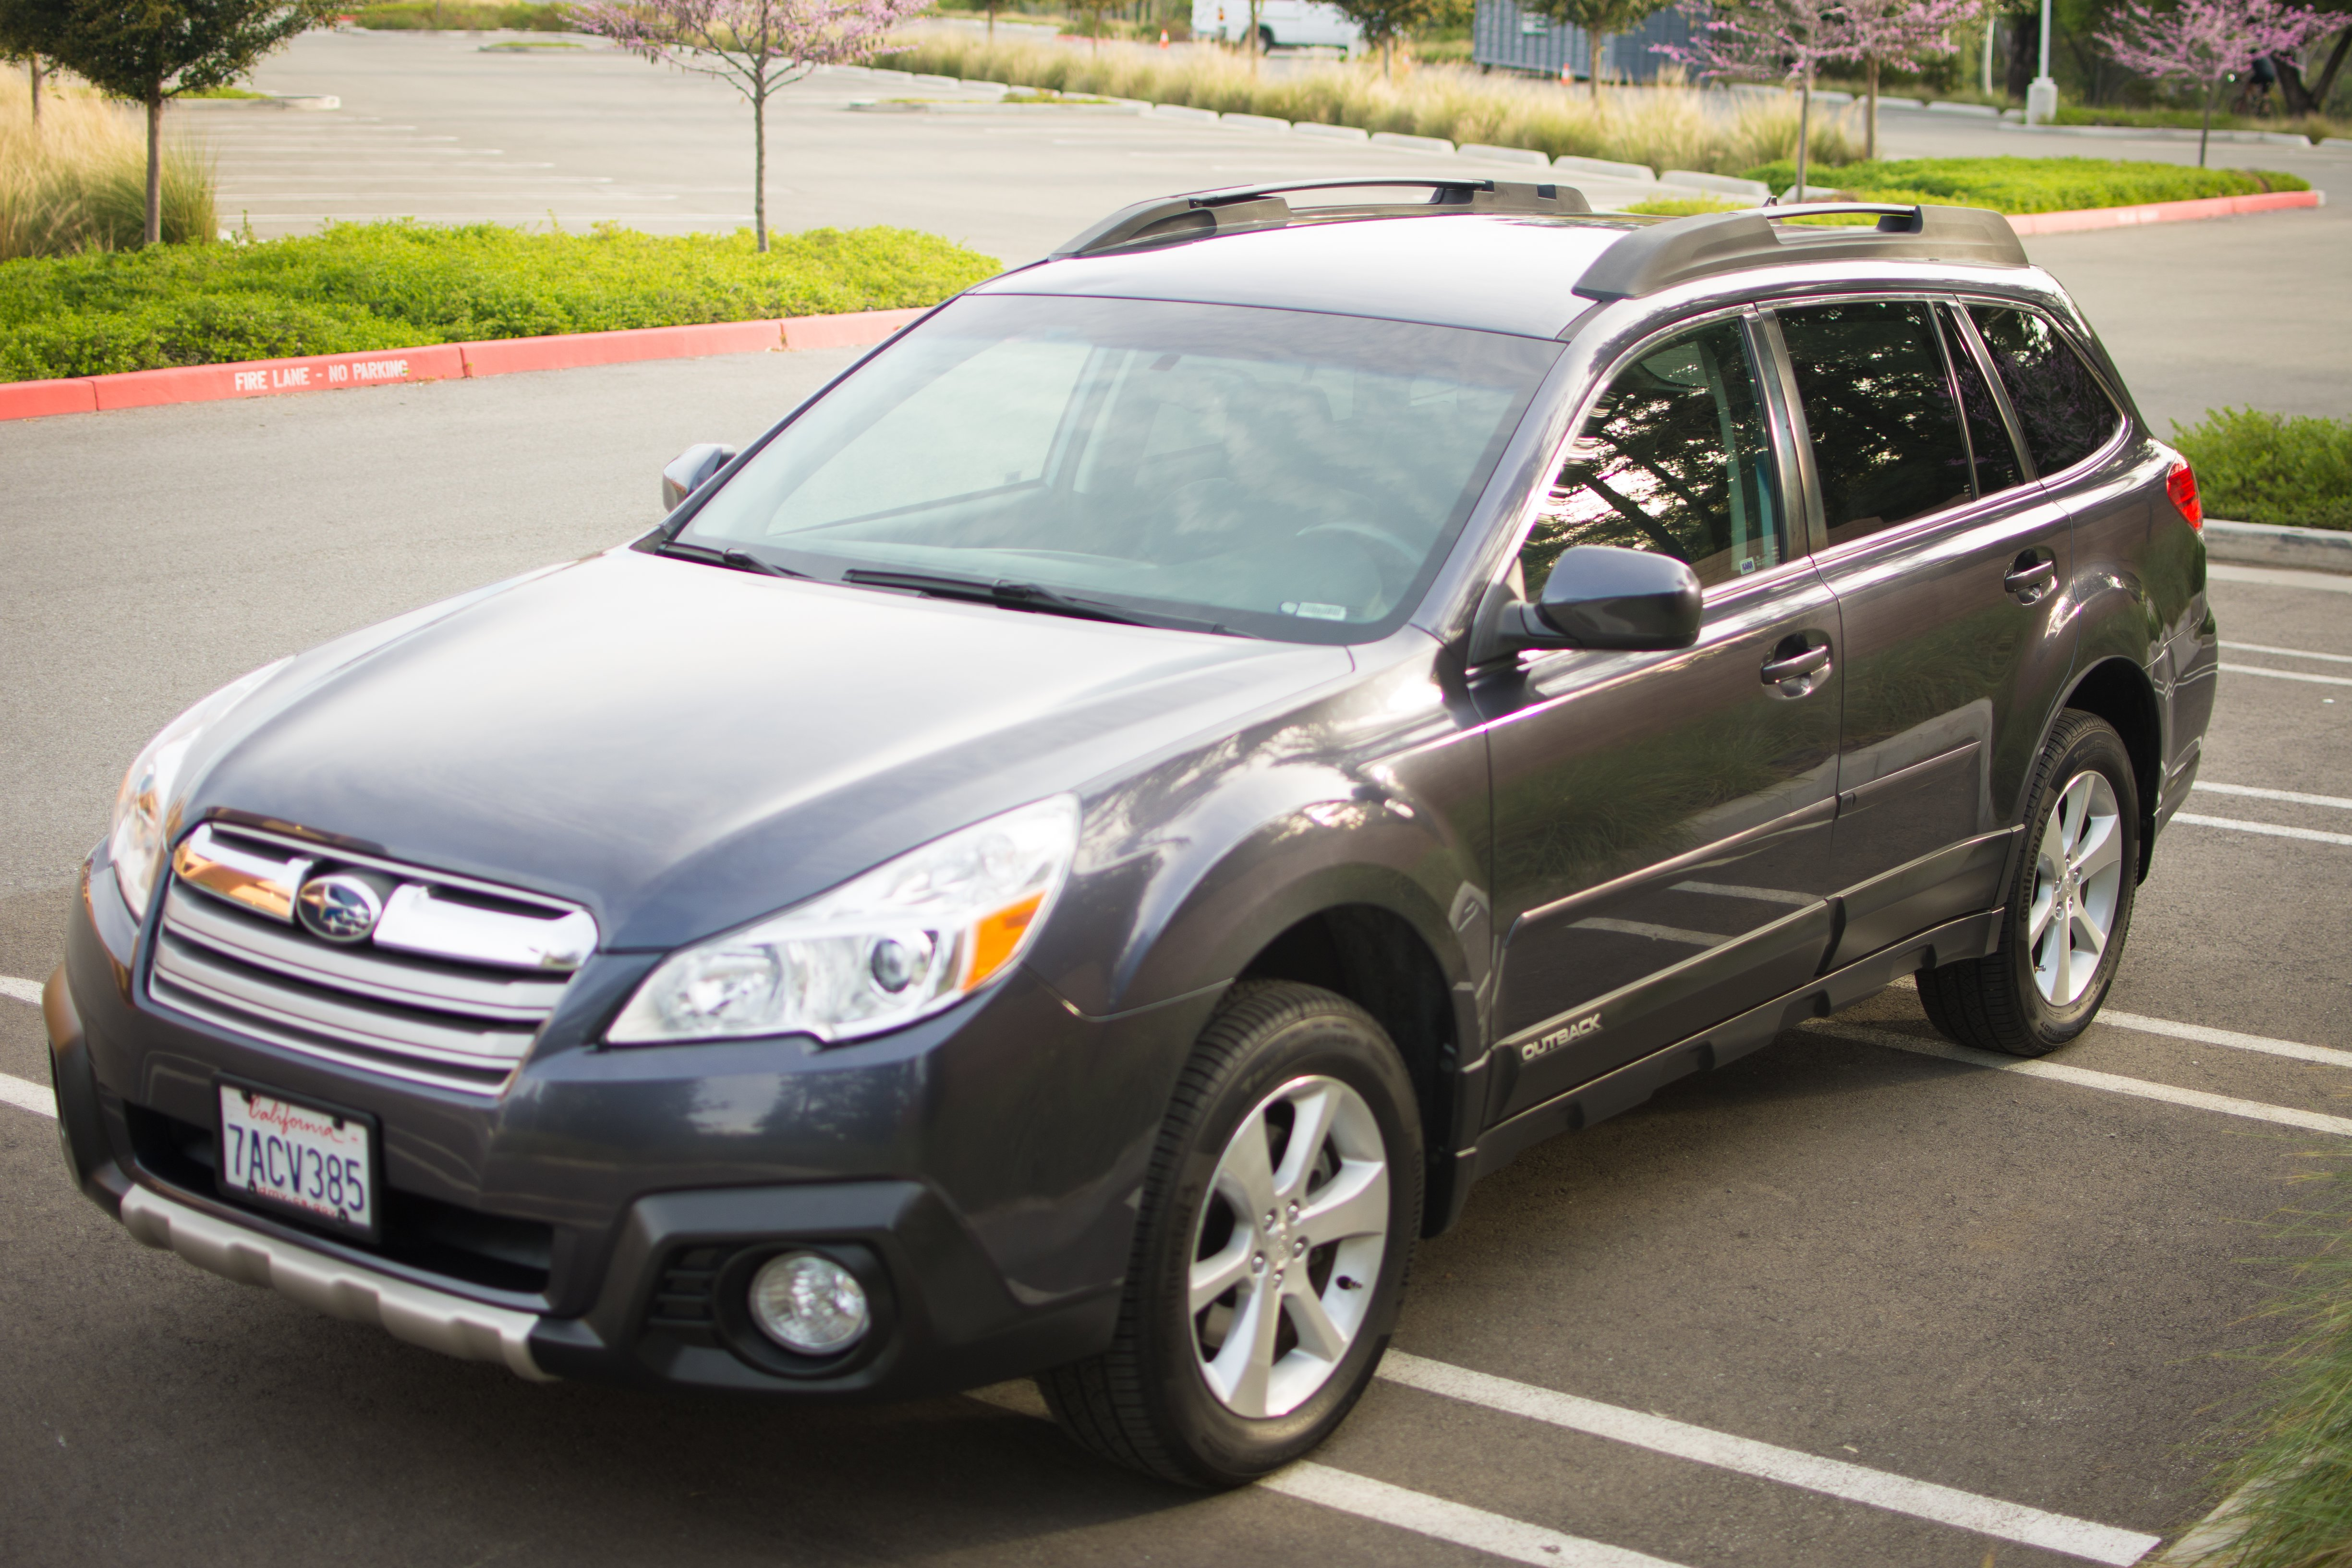 FS 2013 Subaru Outback 3 6R Limited 37 200 miles